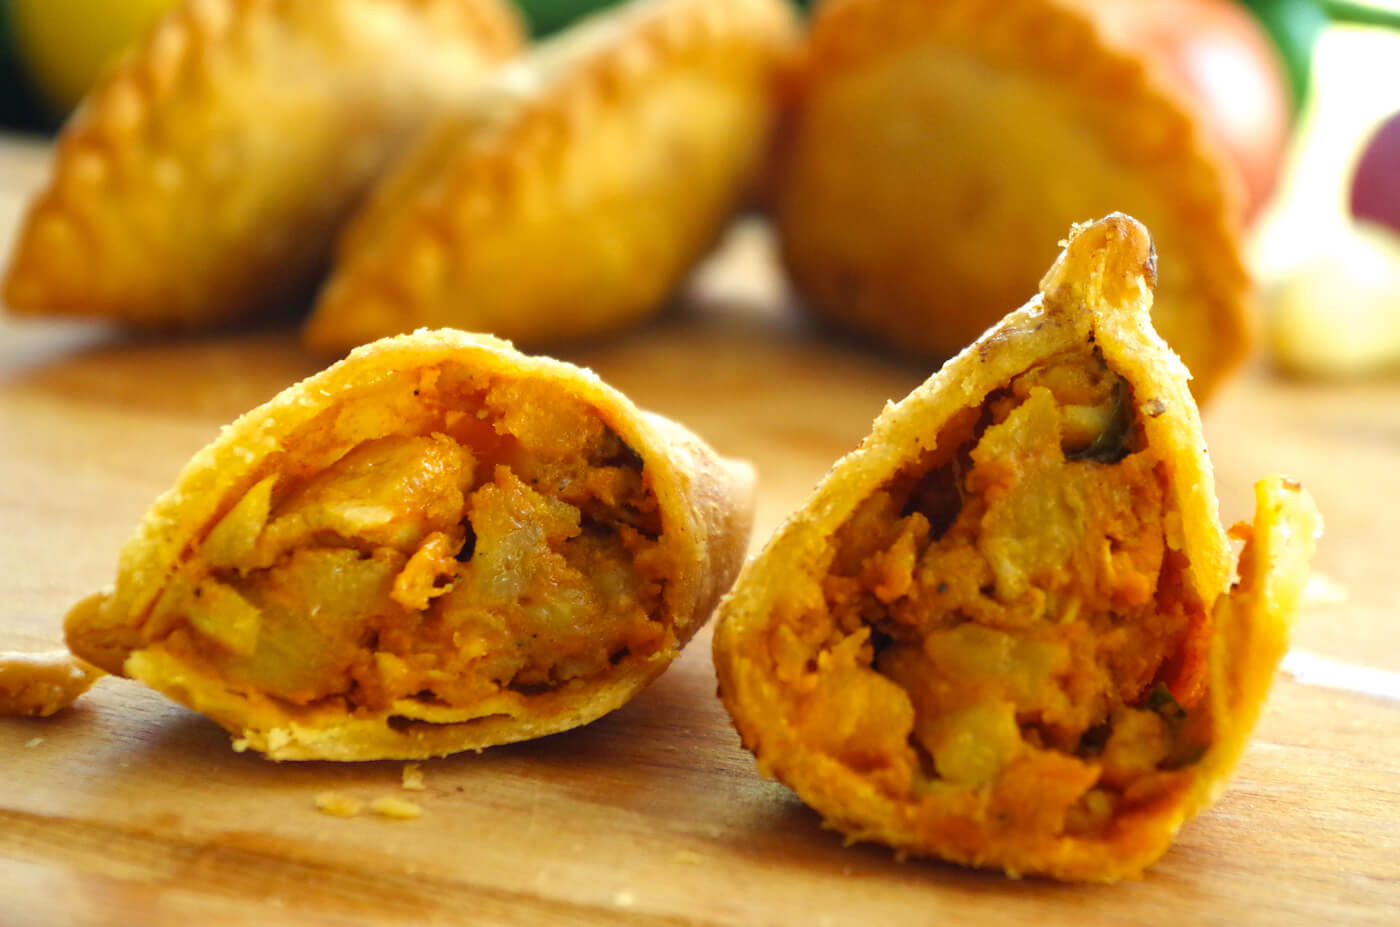 7. Curry Puff 2